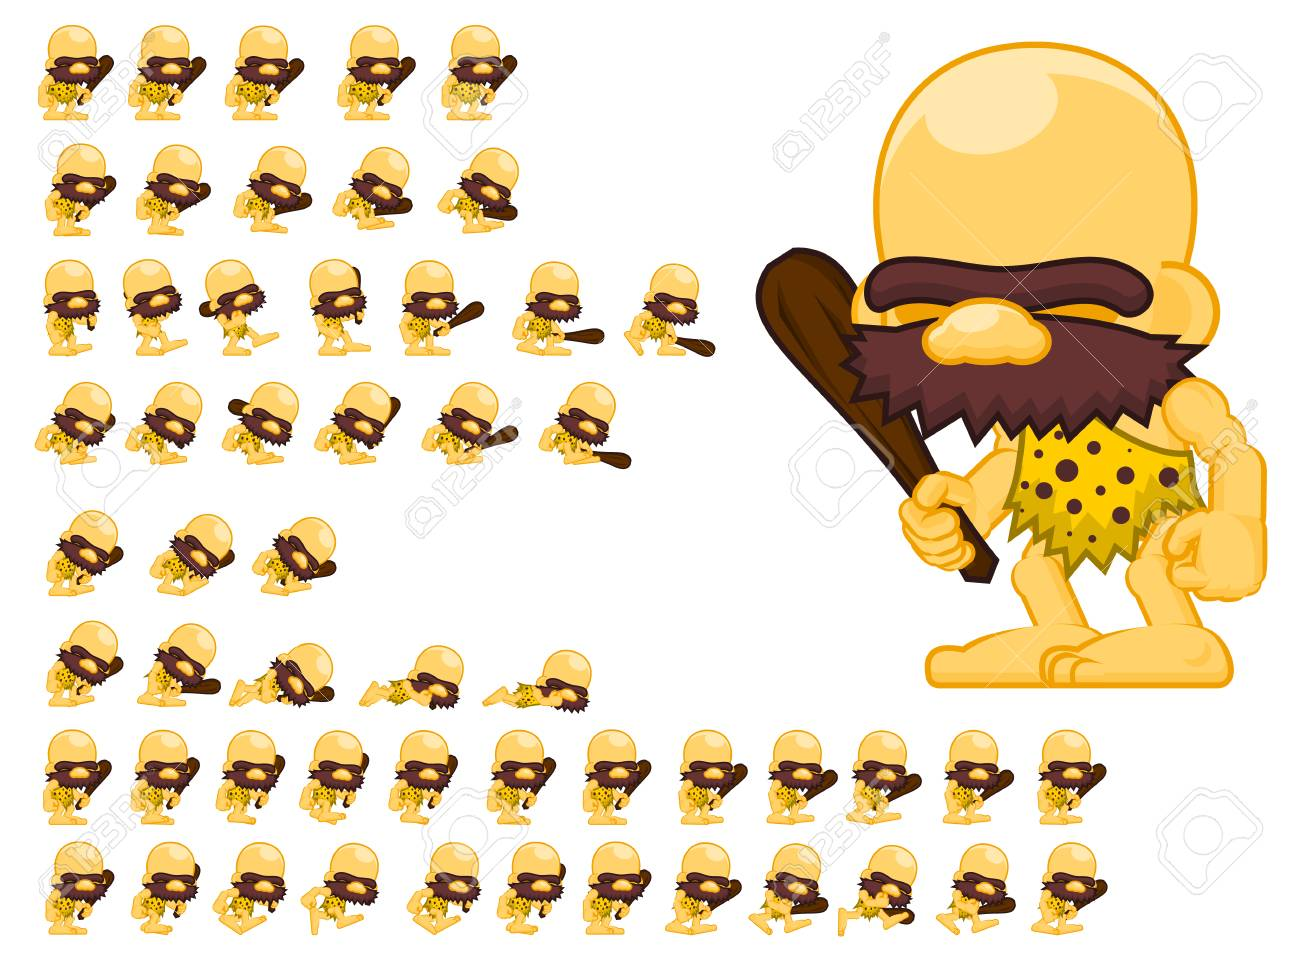 Animated cavemen game character sprites